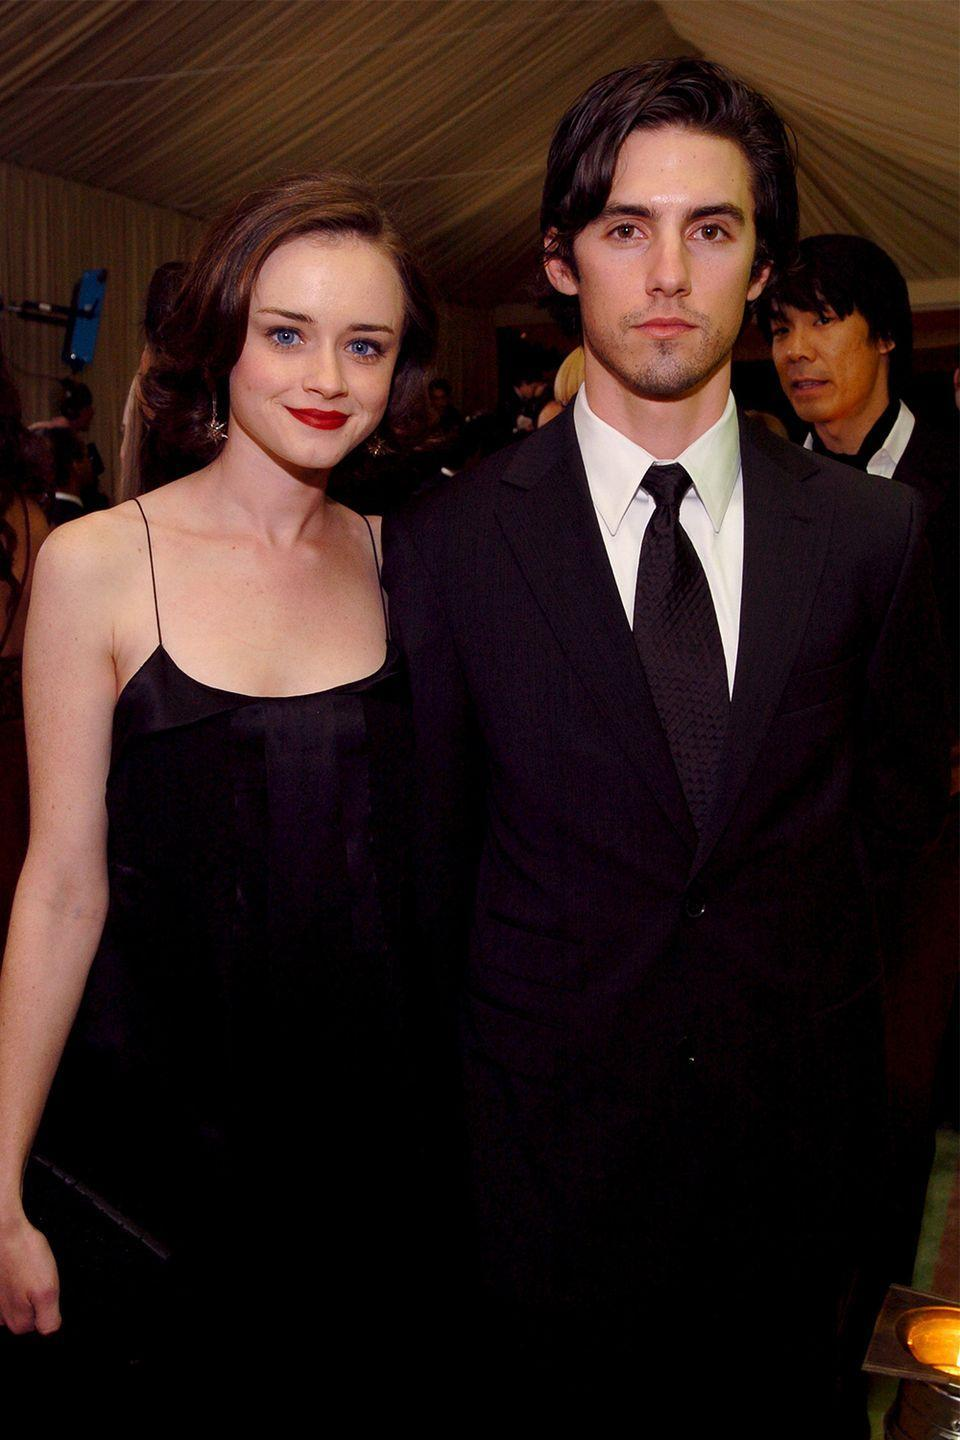 """<p>The on-screen couple (a.k.a Rory Gilmore and Jess Mariano) also dated in real life. Their romance began in 2001, just one year after becoming <em>Gilmore Girls</em> co-stars. And though Bledel said they had talked about marriage, the two split up after four years together.</p><p>""""I think everybody who has been dating for more than a couple of years probably talks about it at some point,"""" Bledel <a href=""""https://www.popsugar.com/celebrity/Did-Milo-Ventimiglia-Alexis-Bledel-Date-Real-Life-44016121"""" rel=""""nofollow noopener"""" target=""""_blank"""" data-ylk=""""slk:told"""" class=""""link rapid-noclick-resp"""">told </a><em><a href=""""https://www.popsugar.com/celebrity/Did-Milo-Ventimiglia-Alexis-Bledel-Date-Real-Life-44016121"""" rel=""""nofollow noopener"""" target=""""_blank"""" data-ylk=""""slk:People"""" class=""""link rapid-noclick-resp"""">People</a> </em>back in September 2005. """"It's a fun thing for us to talk about, but that's it.""""<br></p>"""